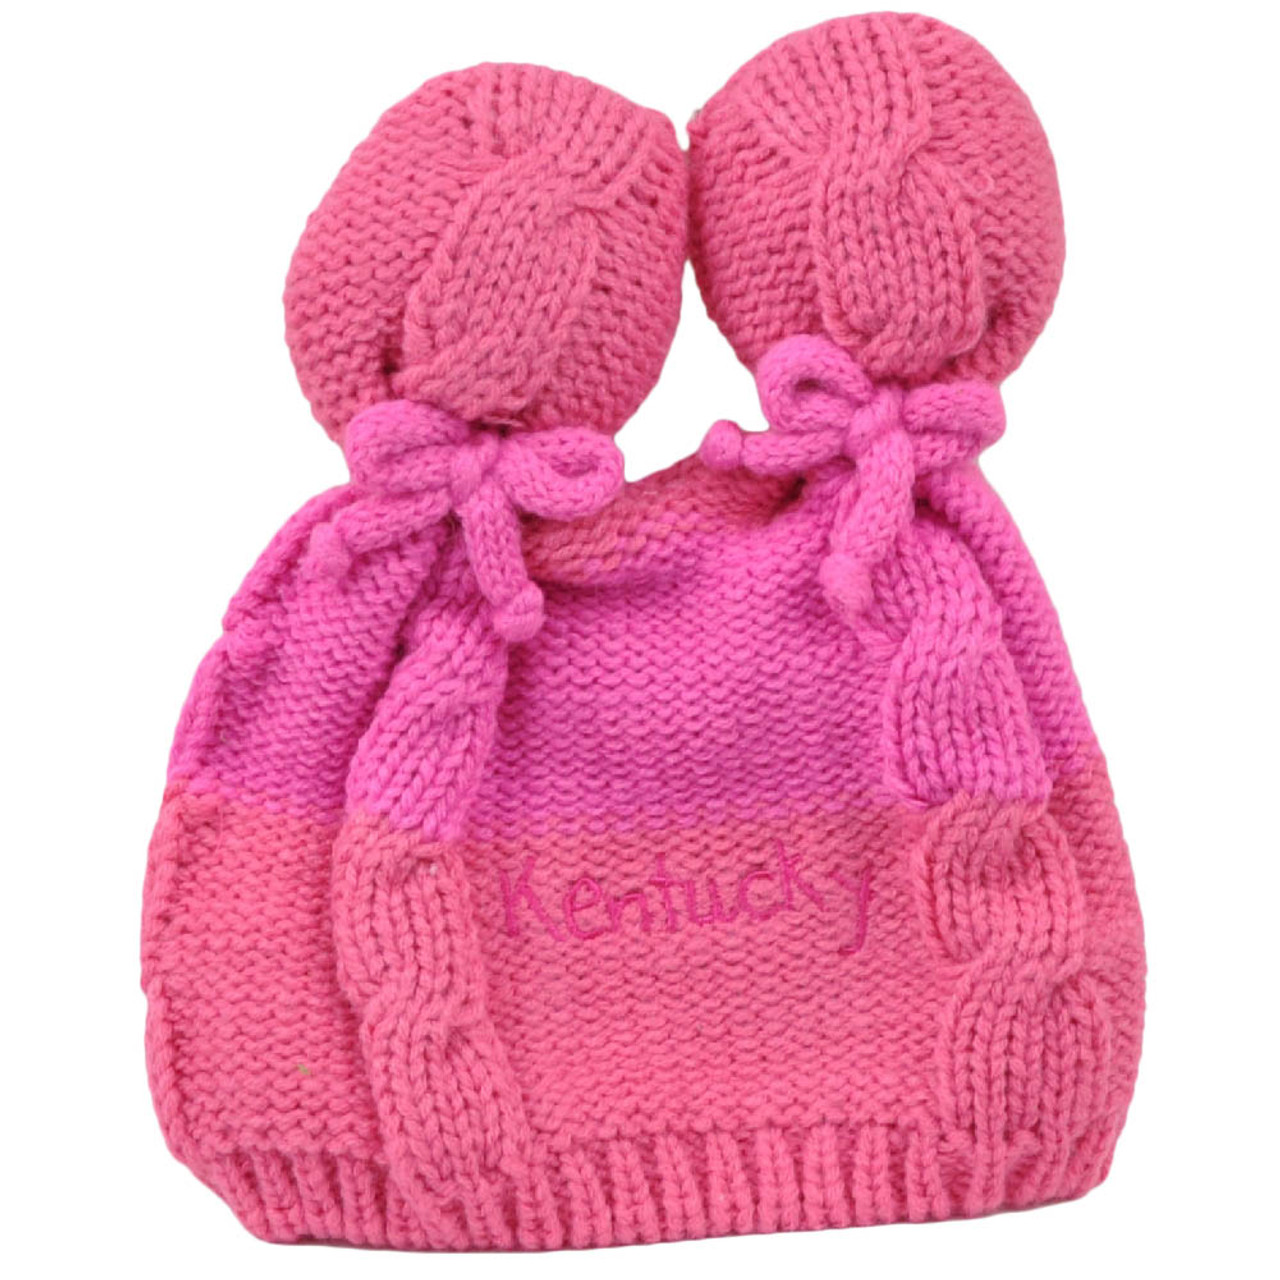 2567b15beb9 Kentucky State Infant Striped Knit Beanie Pink Crochet Ear Ball Hat USA  America